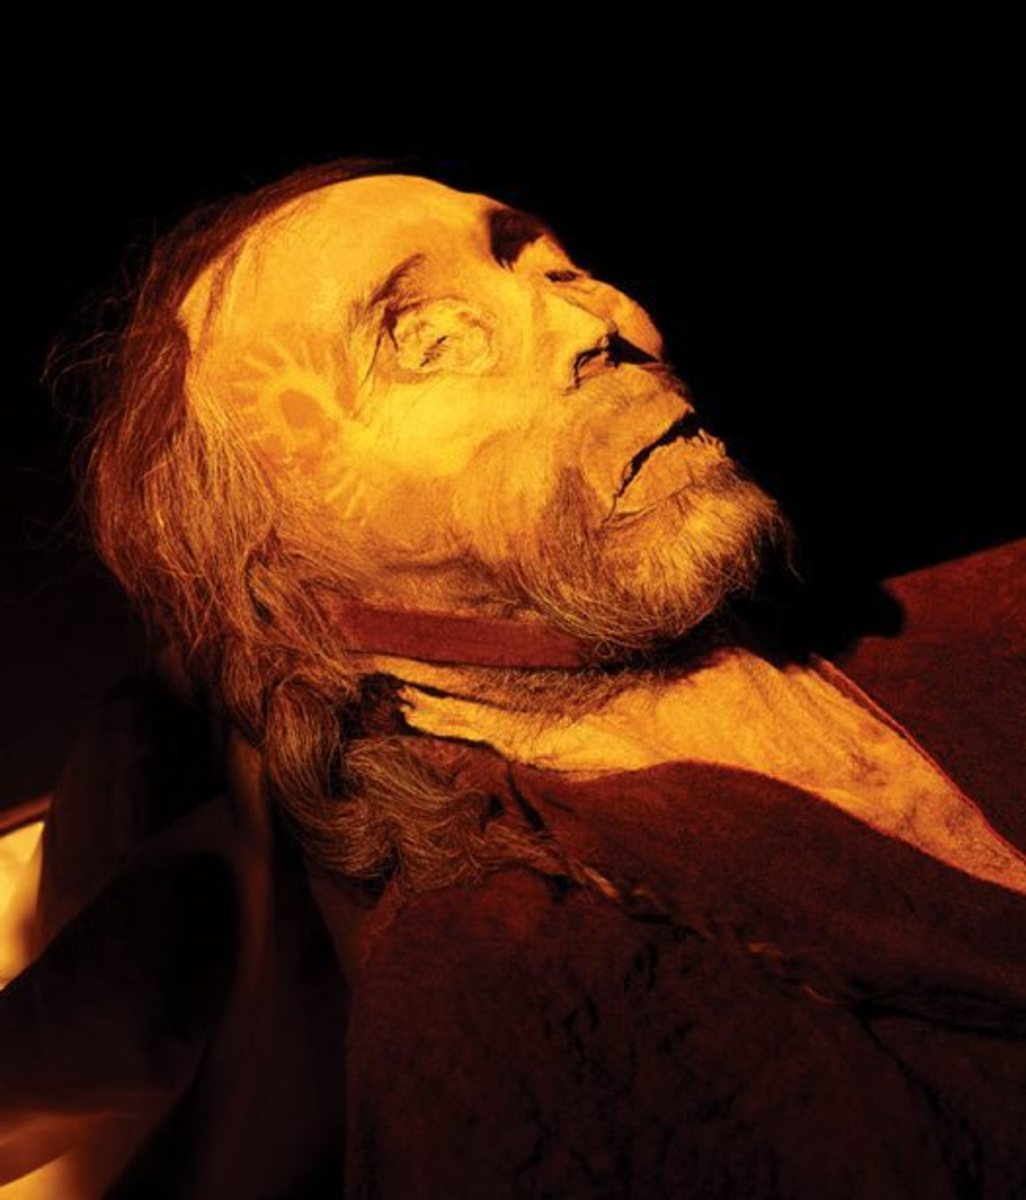 He looks like he is sleeping, but he is over 4,000 years old!